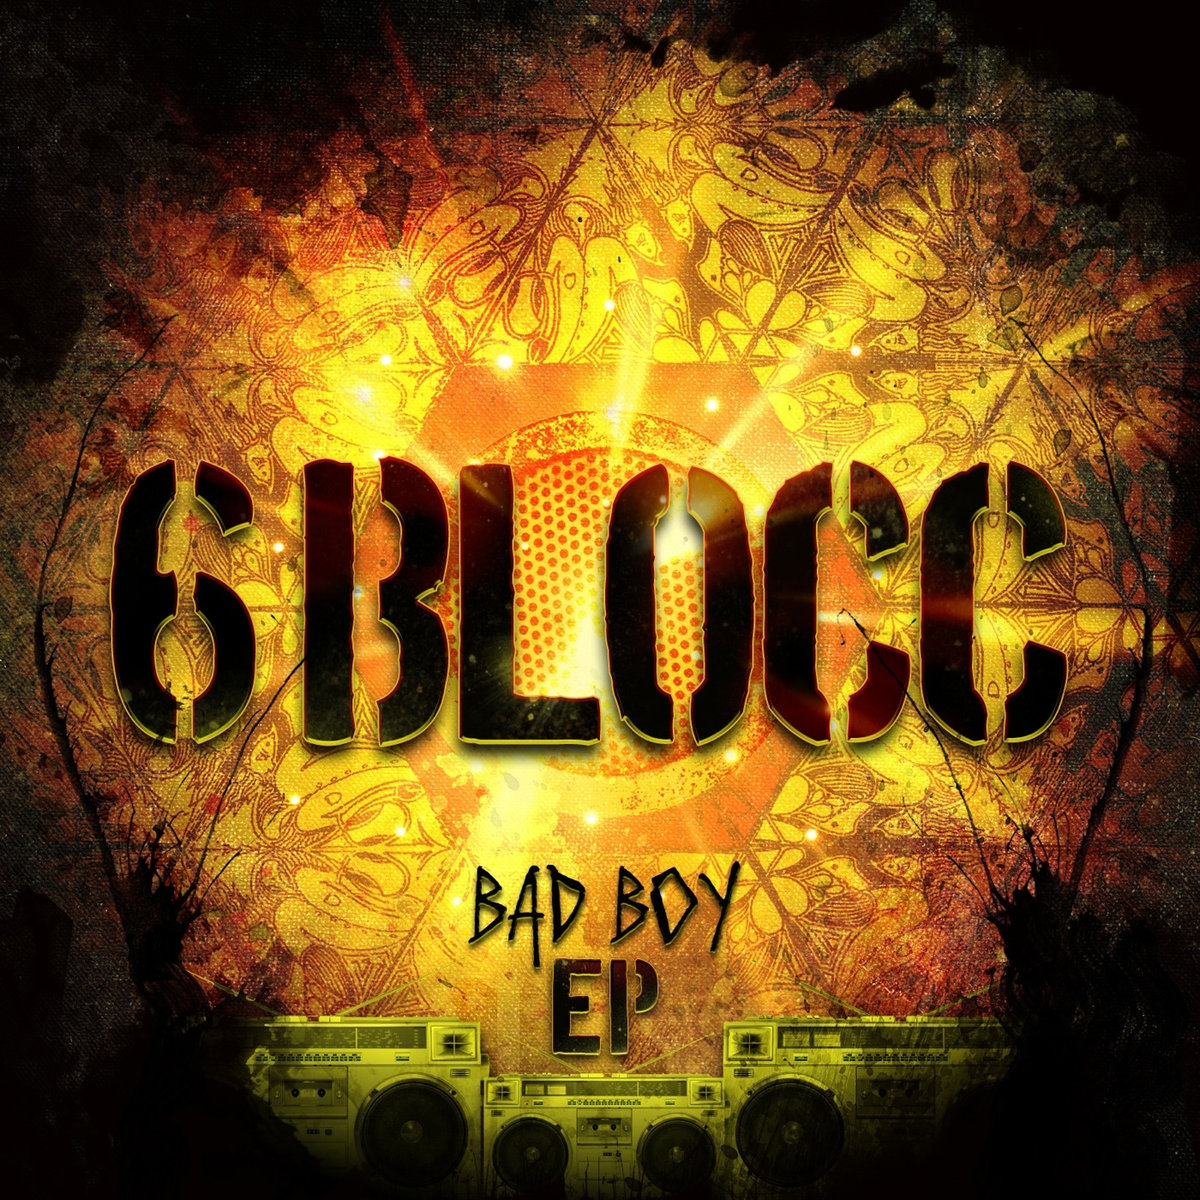 6Blocc - Bad Boy @ 'Bad Boy' album (electronic, dubstep)